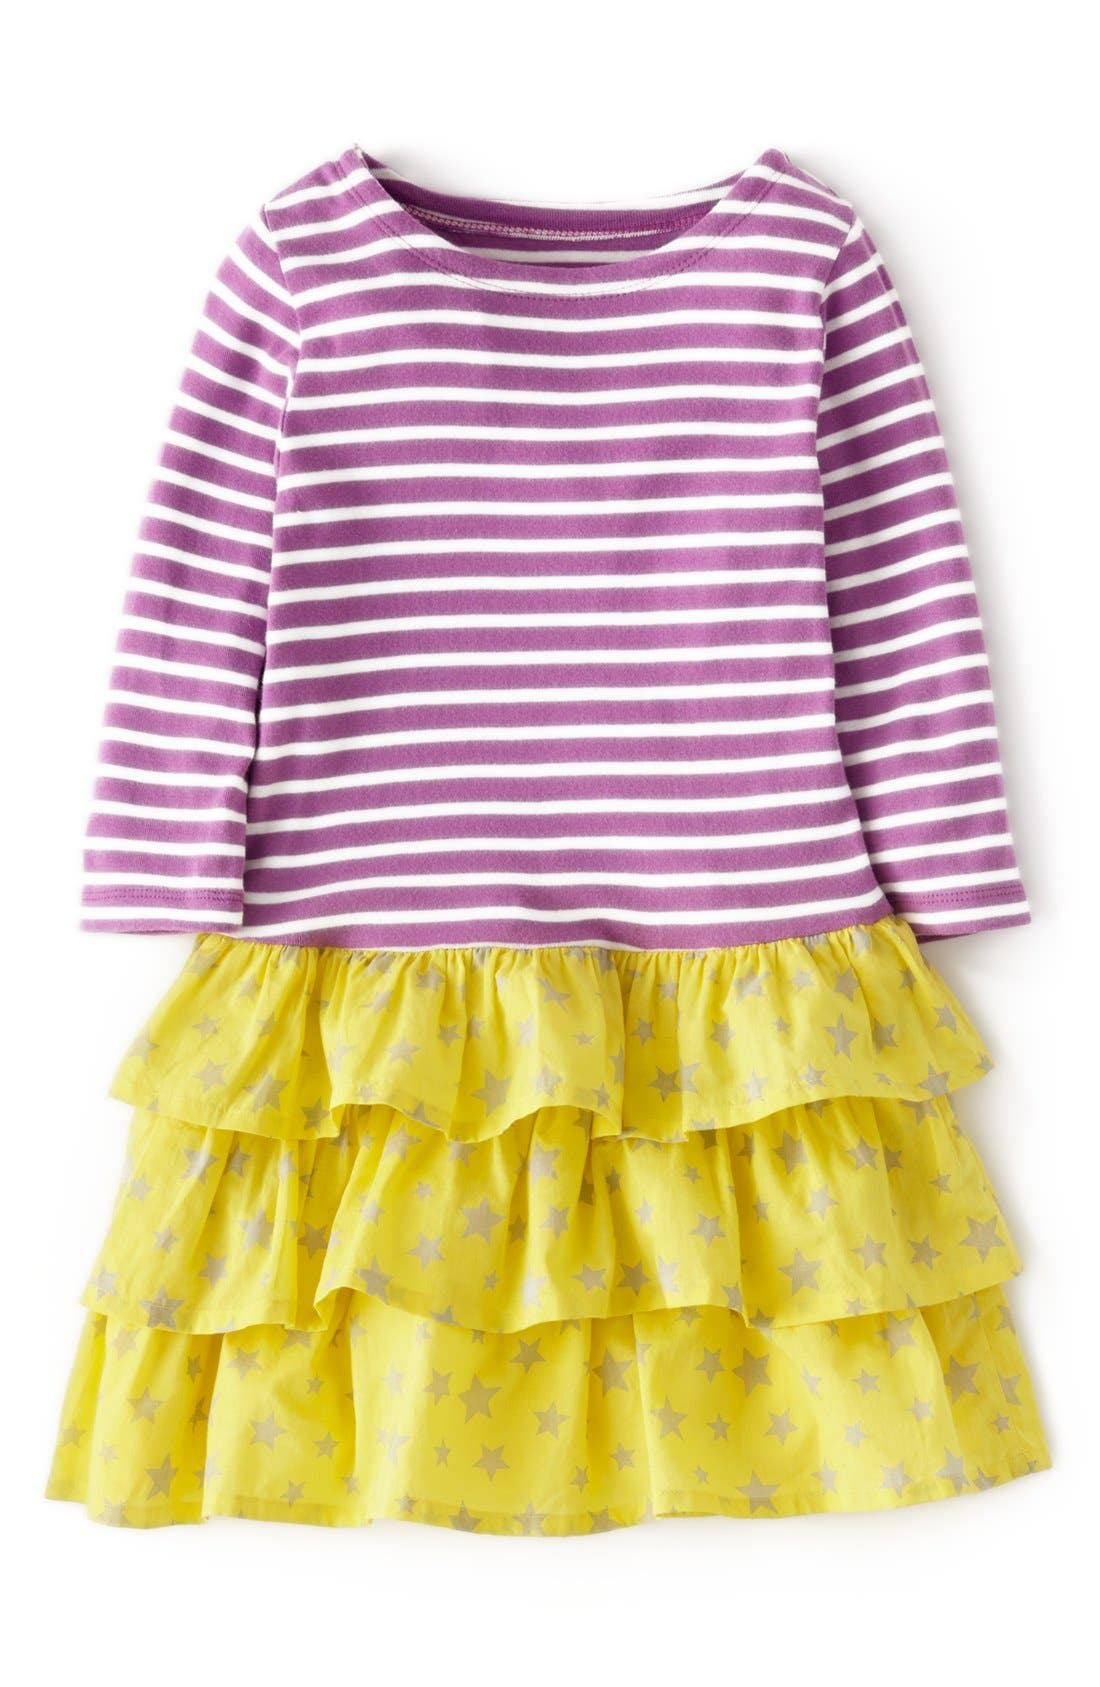 Main Image - Mini Boden Stripy Ruffle Dress (Toddler Girls, Little Girls & Big Girls)(Online Only)